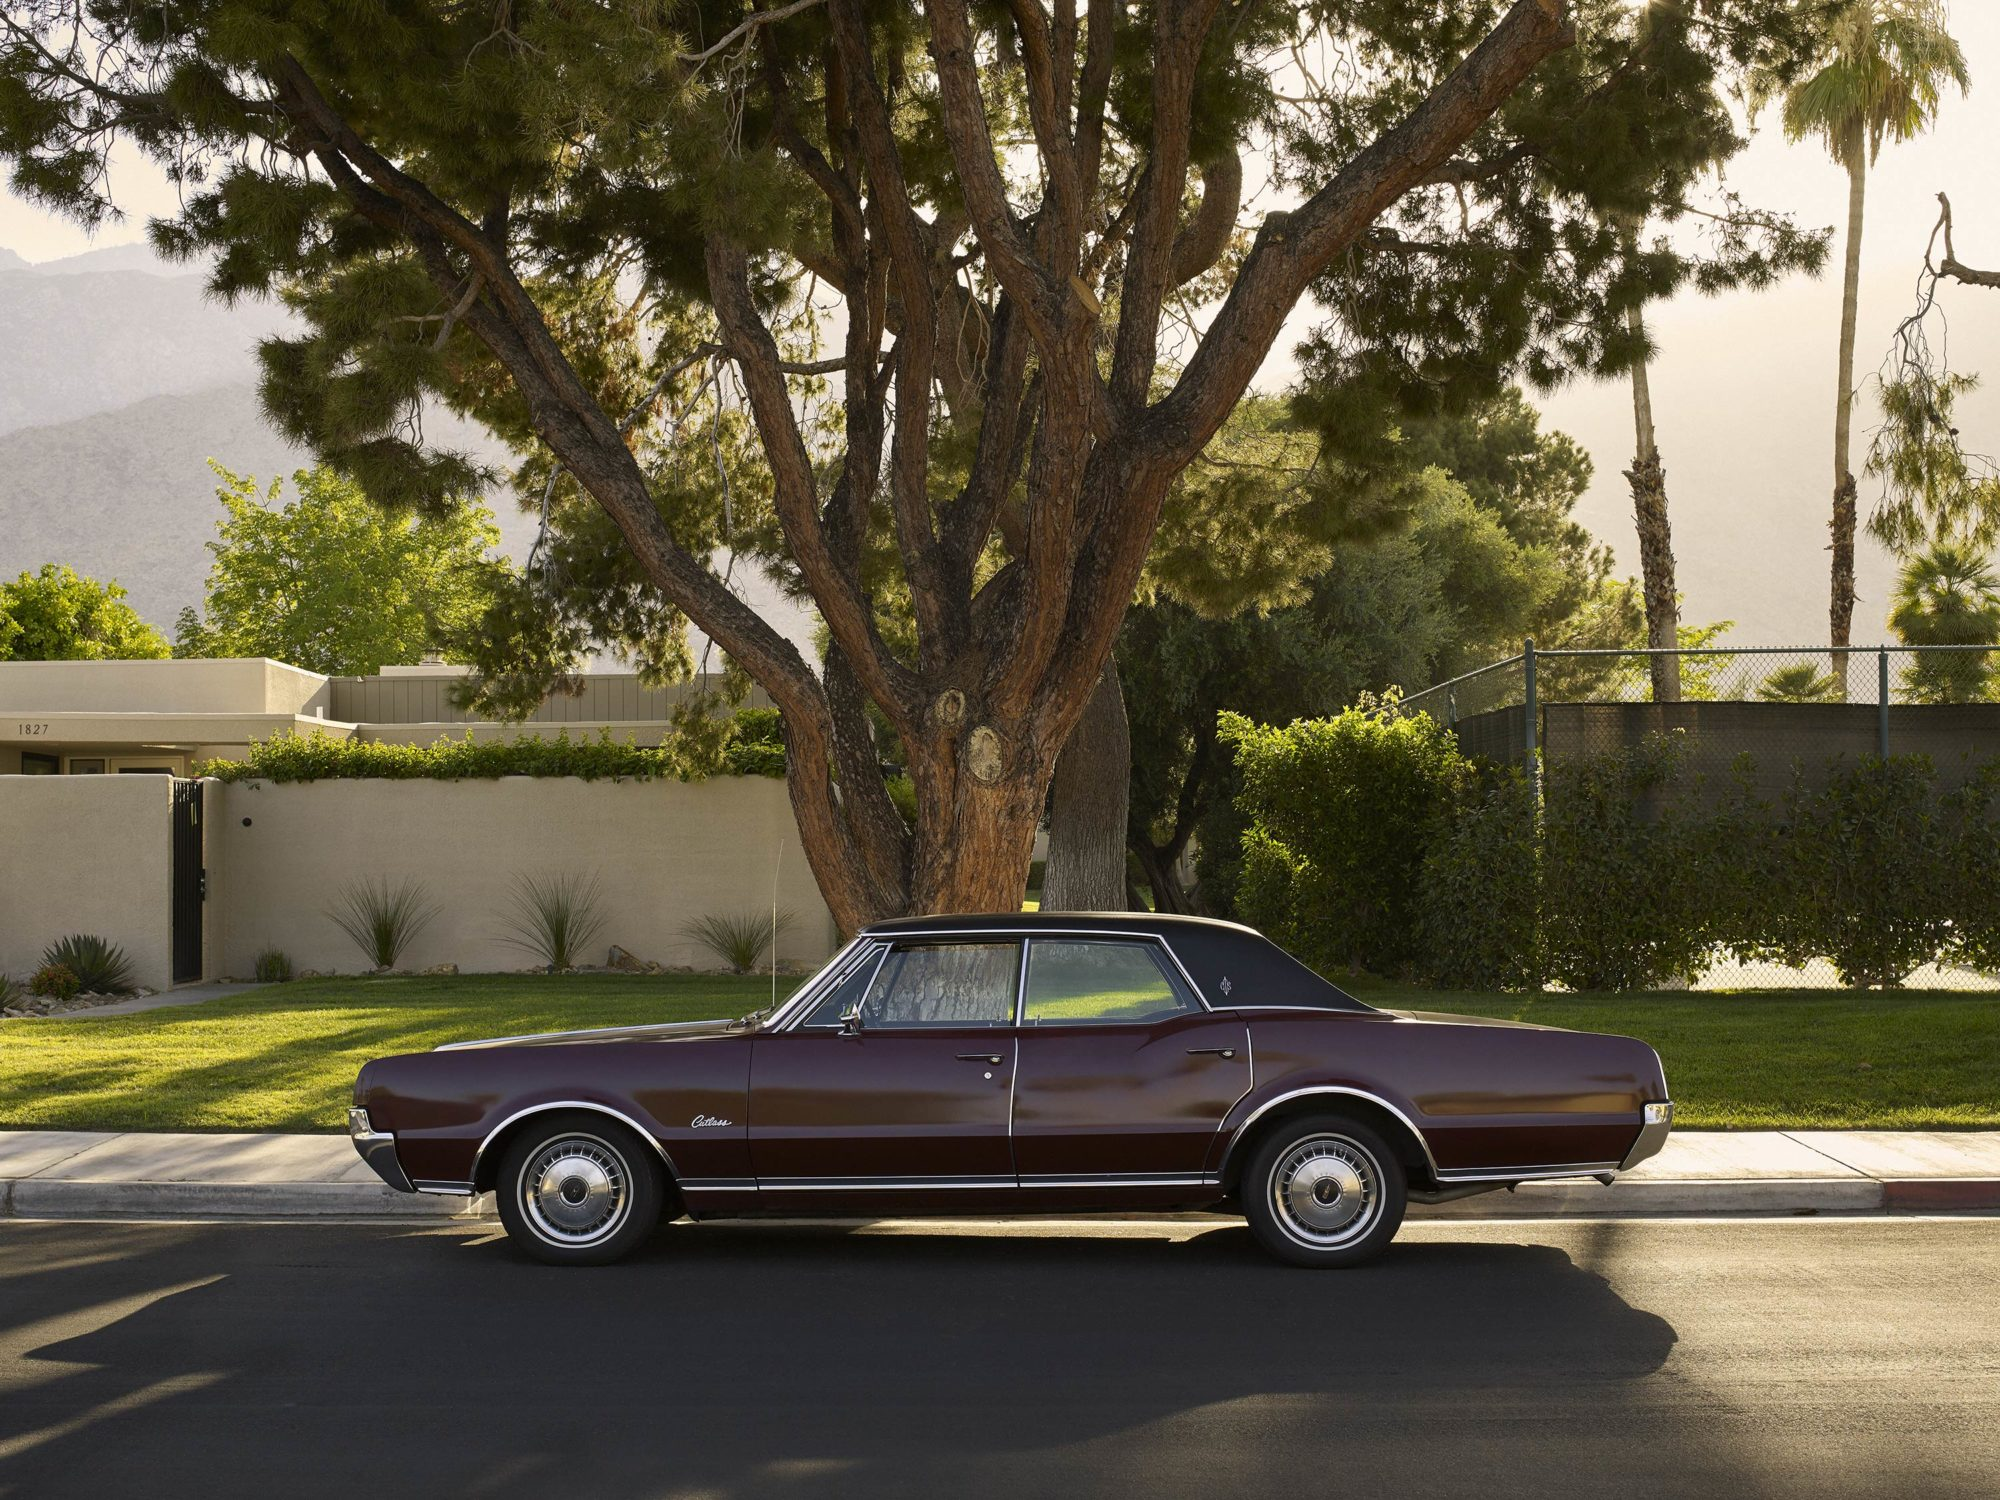 Oldsmobile - I Heart Palm Springs Collection - Fine Art Photography by Toby Dixon